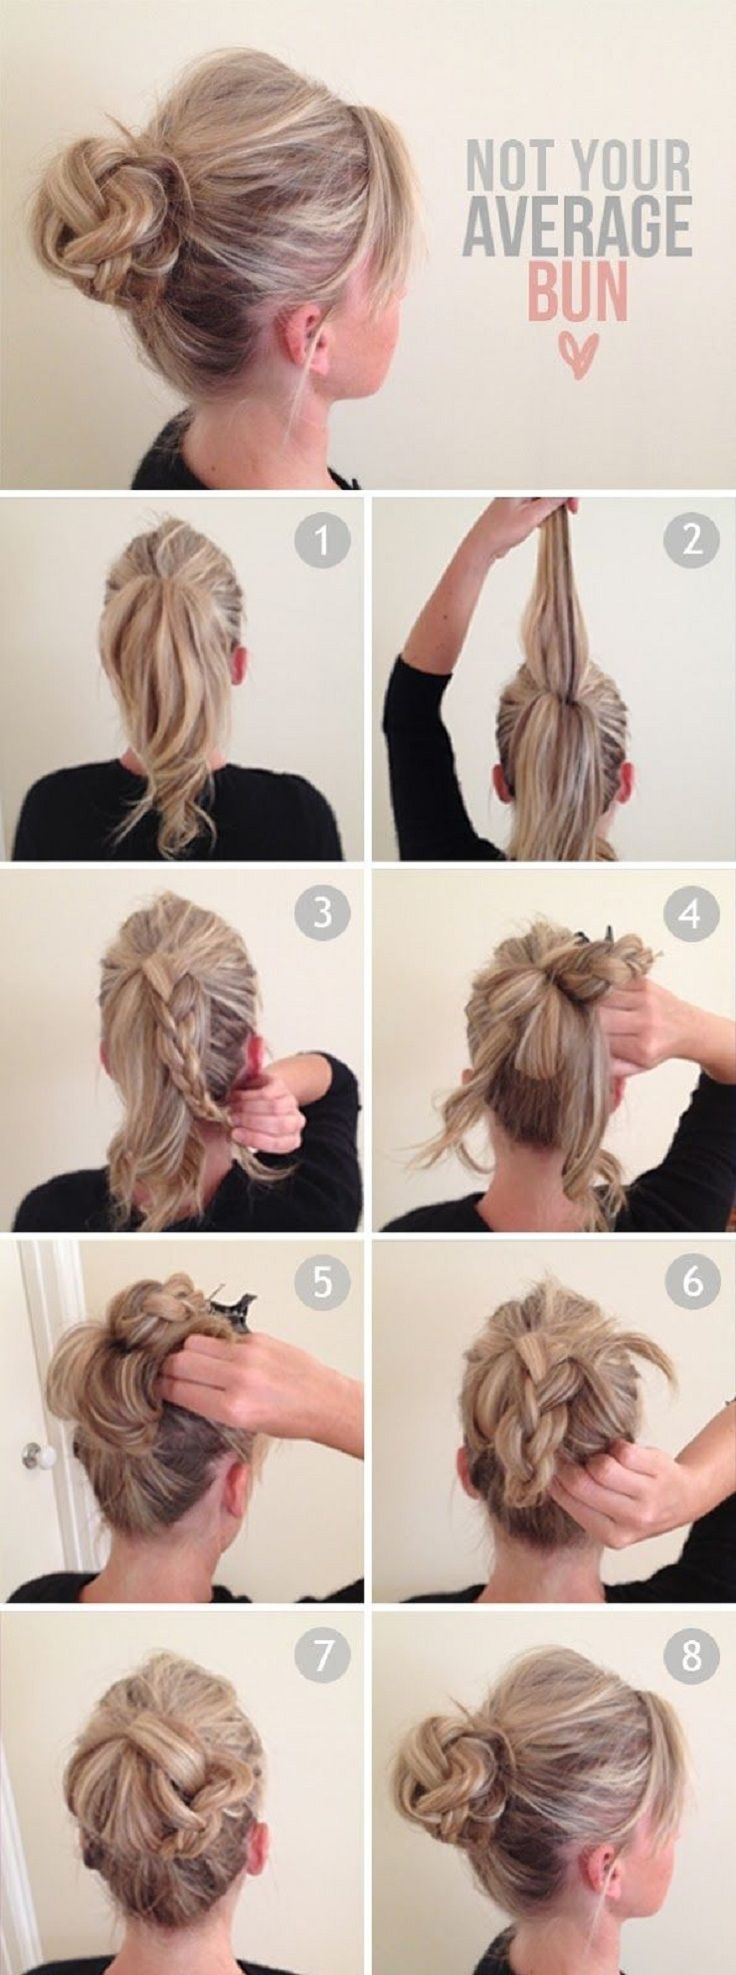 Enjoyable 1000 Images About Hairstyle On Pinterest Updo Braids And Buns Hairstyle Inspiration Daily Dogsangcom